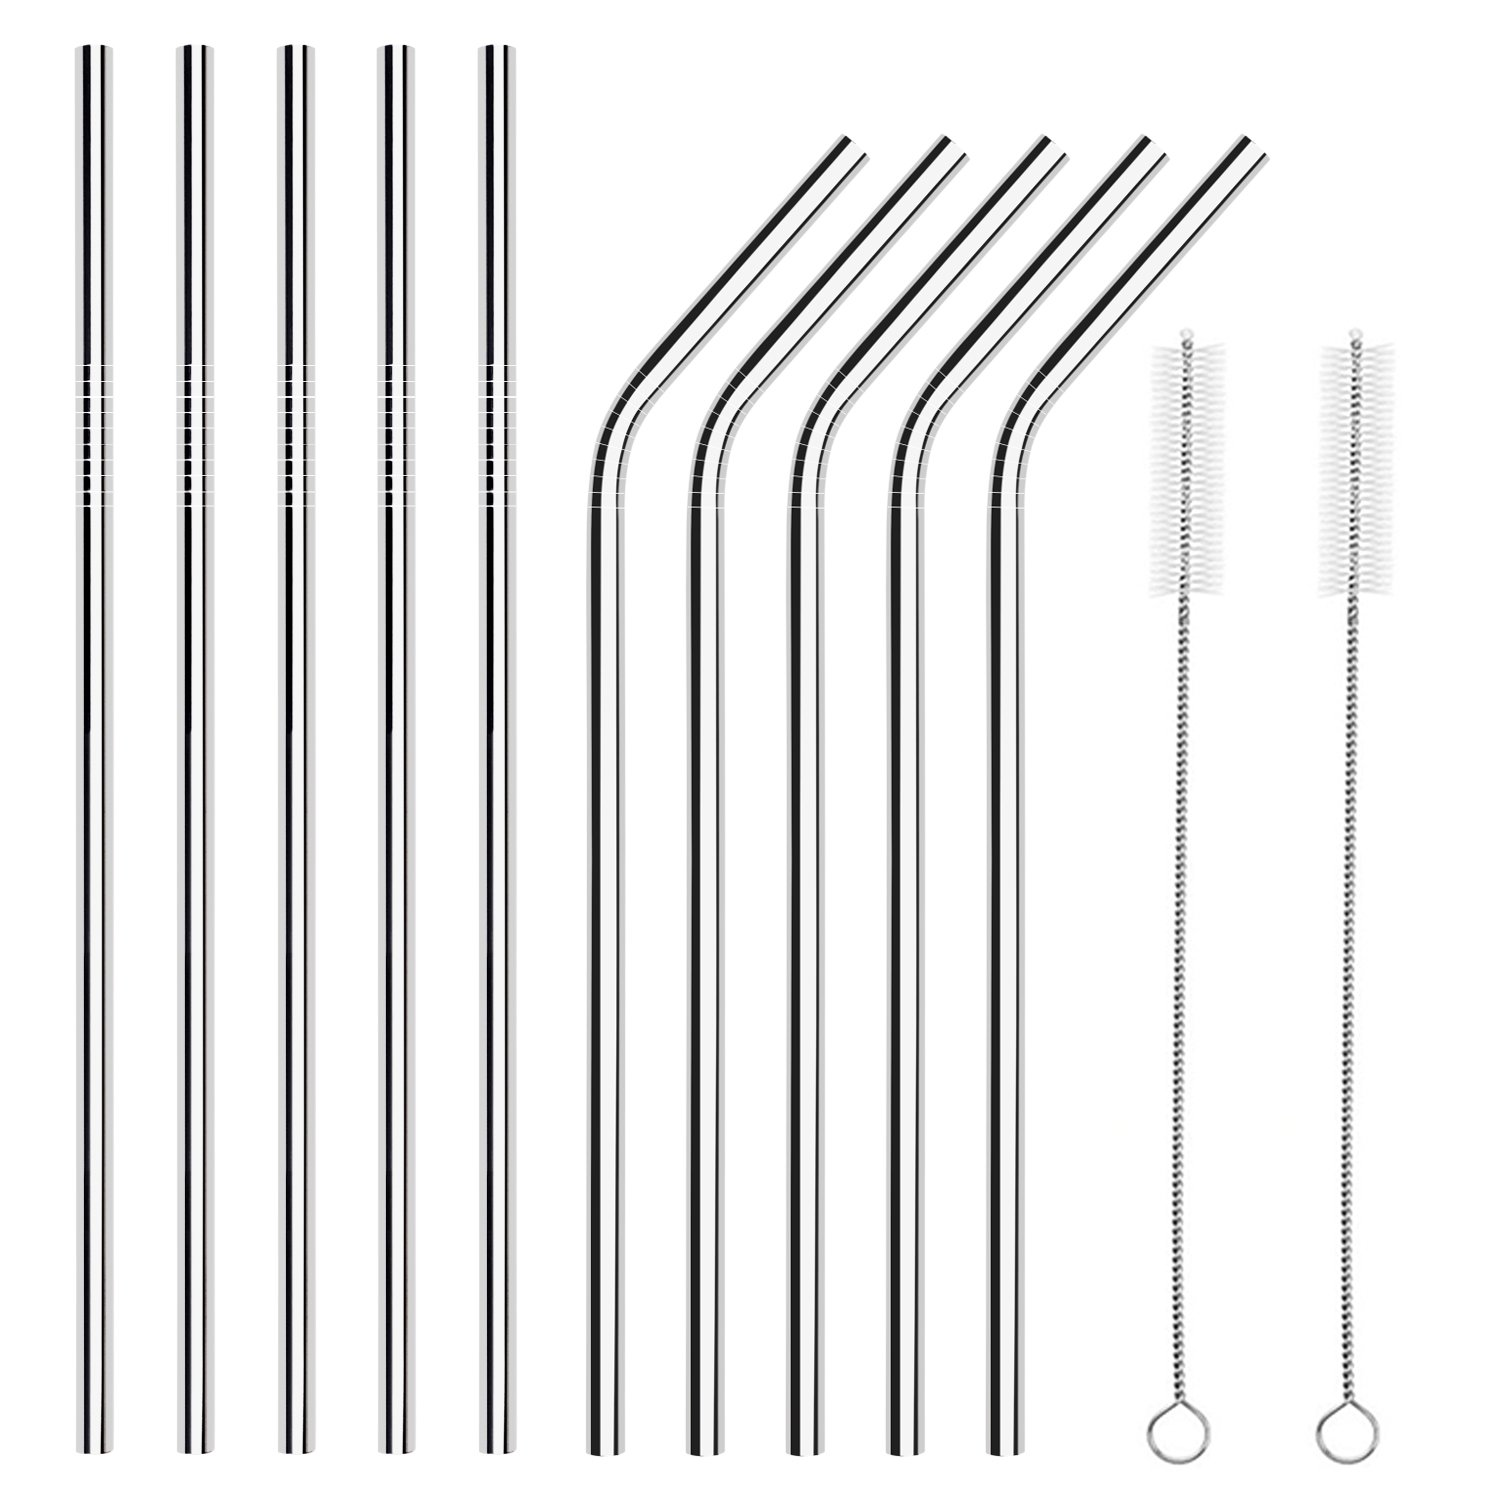 CIEHER 12 CIEHER Set of 10 Stainless Steel Straws 10.5 Inches Reusable Metal Drinking Straws FDA Approved 2 Cleaning Brushes Included 241mm 9.5 Inches (5 Bent Straws + 5 Straight Straws + 2 Brushes)